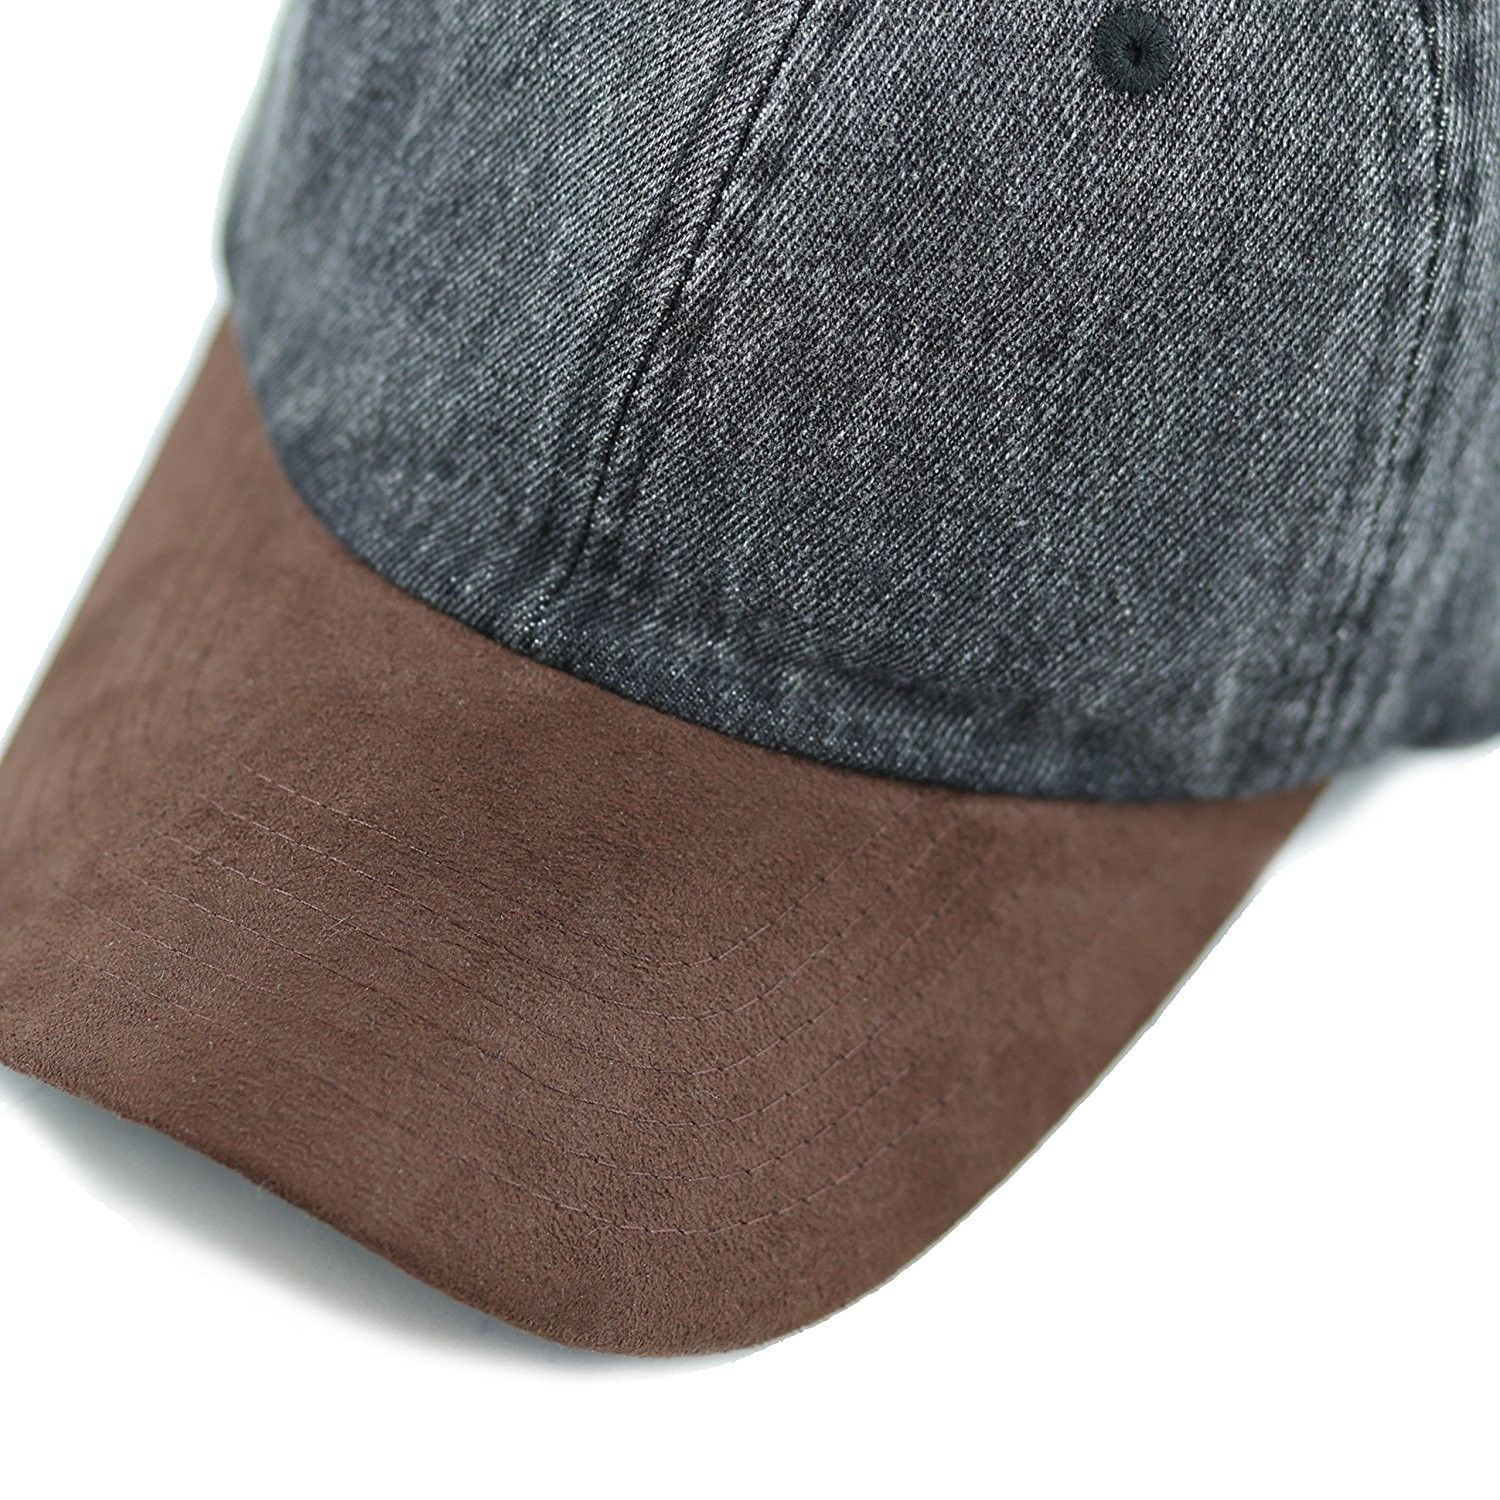 BLANK BALL CAPS HATS TAN BLUE SUEDE LOW PROFILE